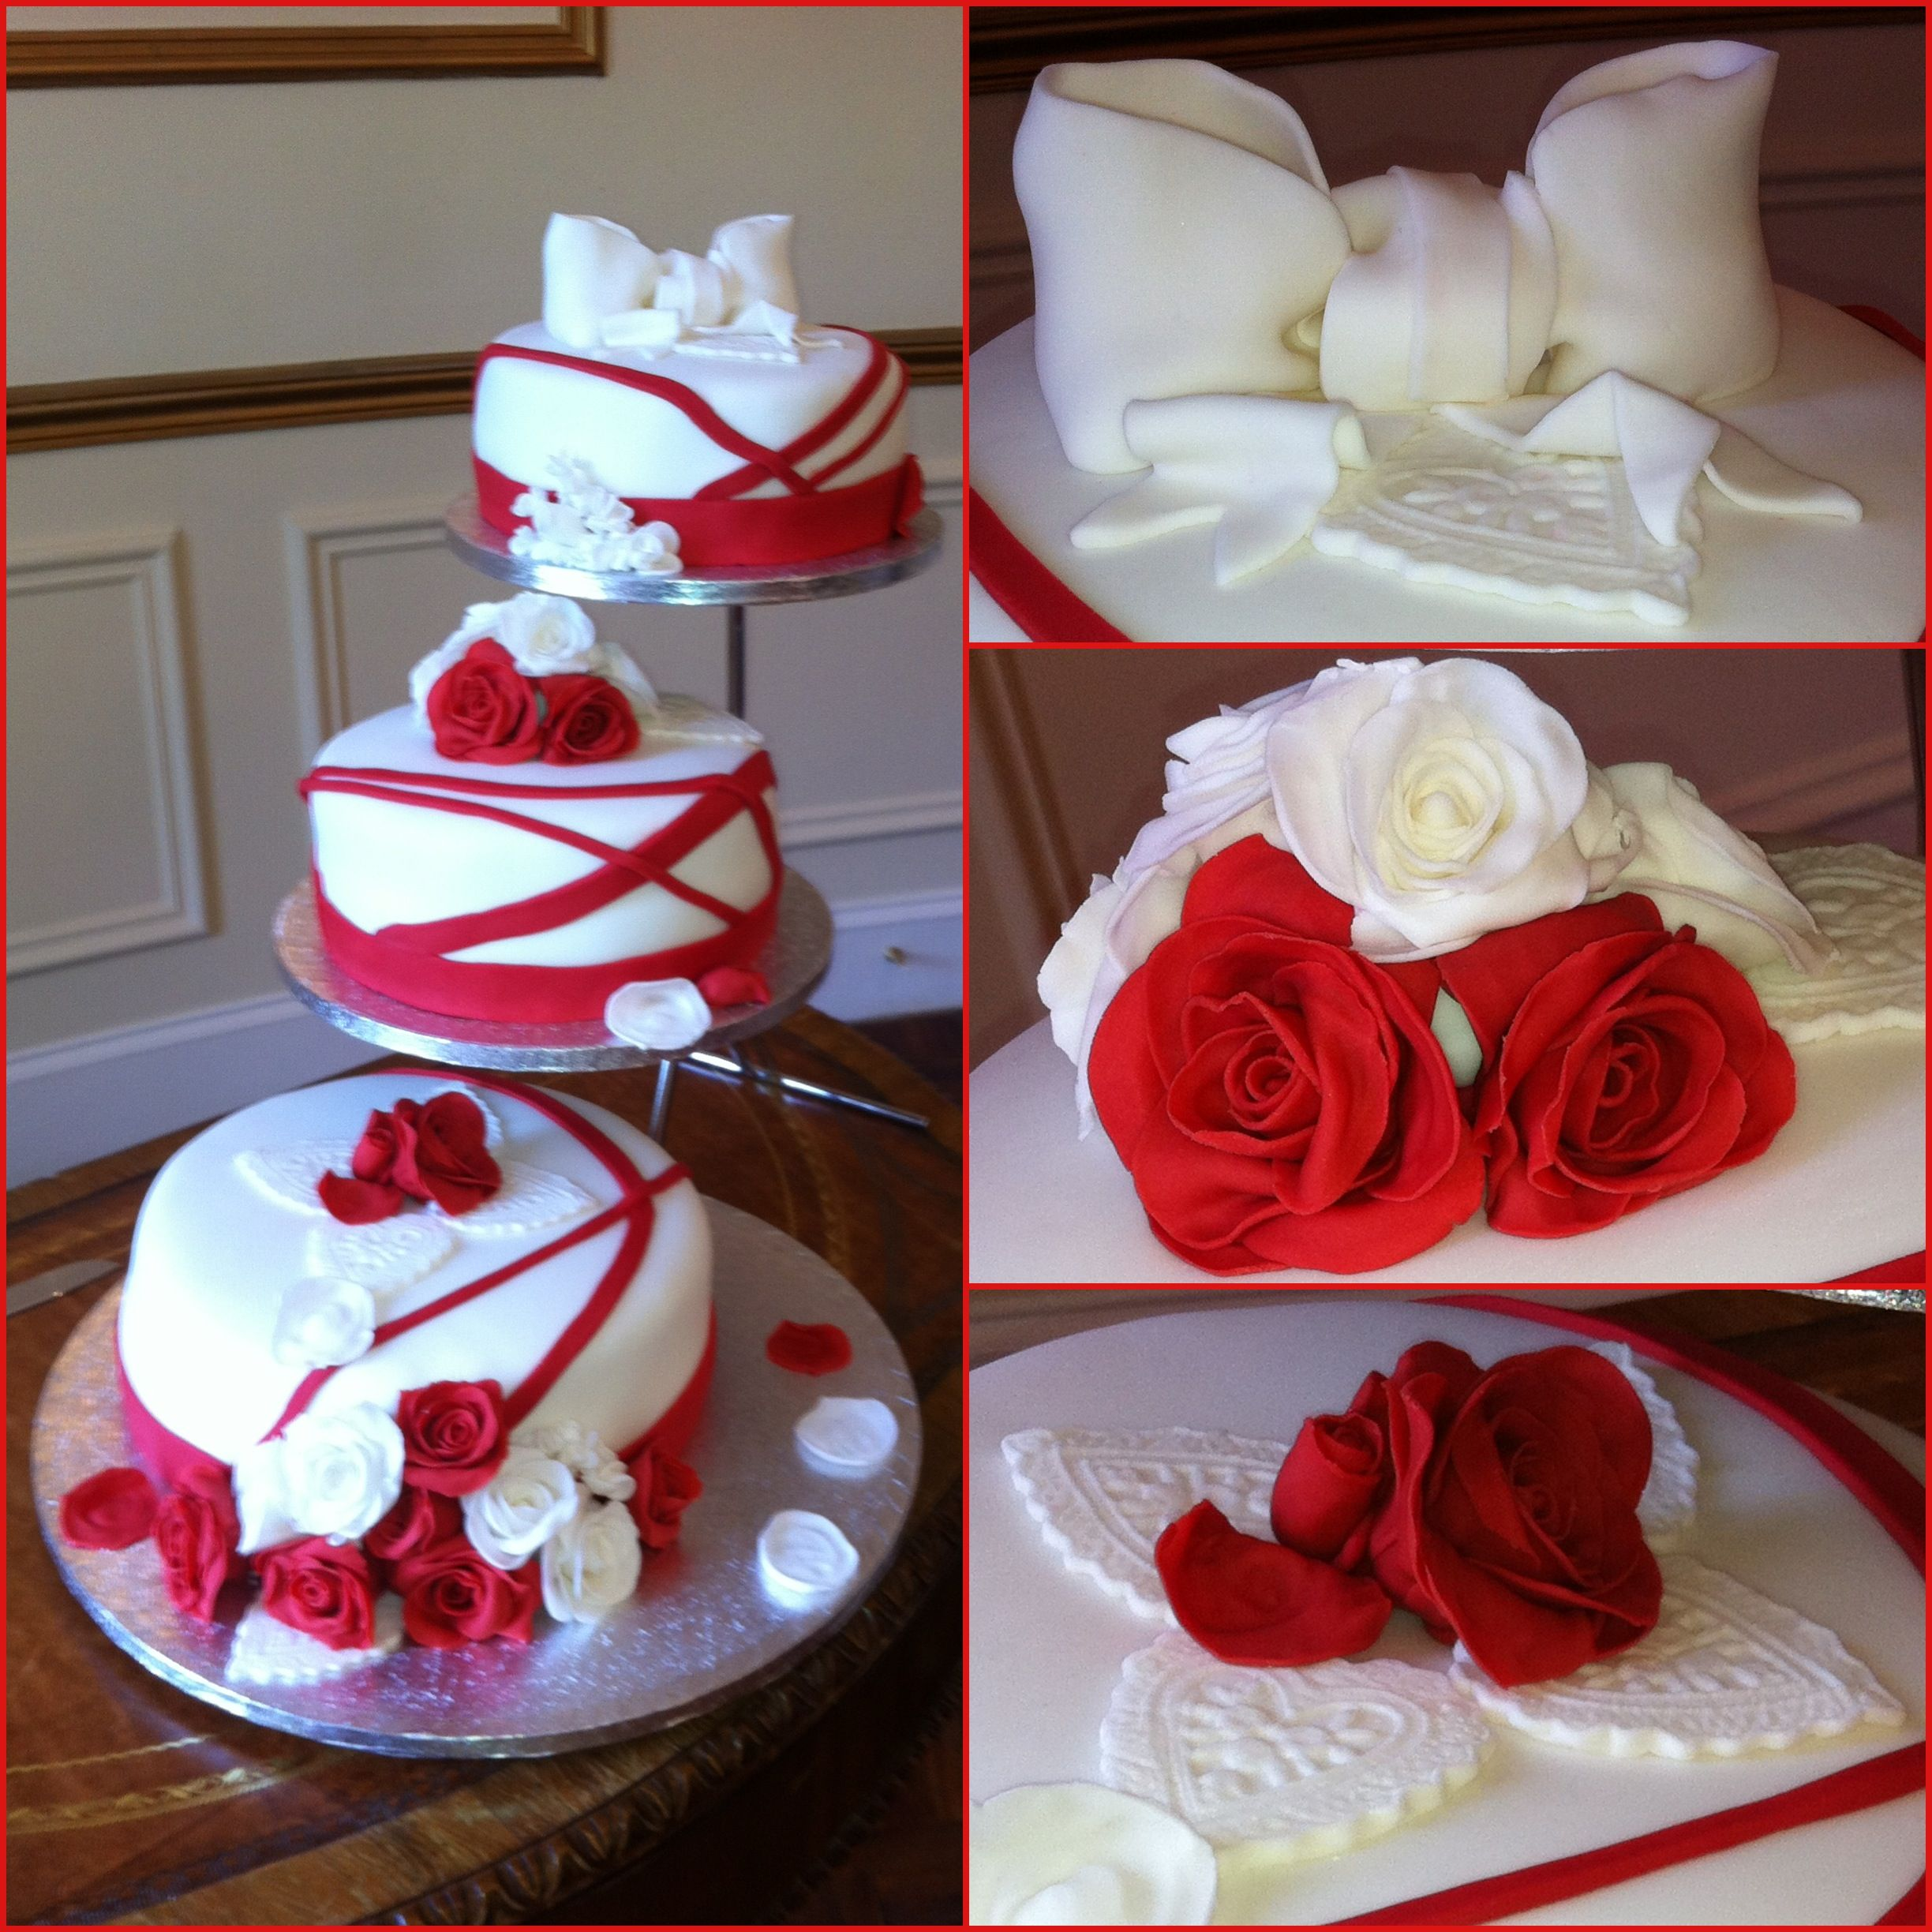 Separated Tier Ruby Wedding Anniversary Cake With Fondant